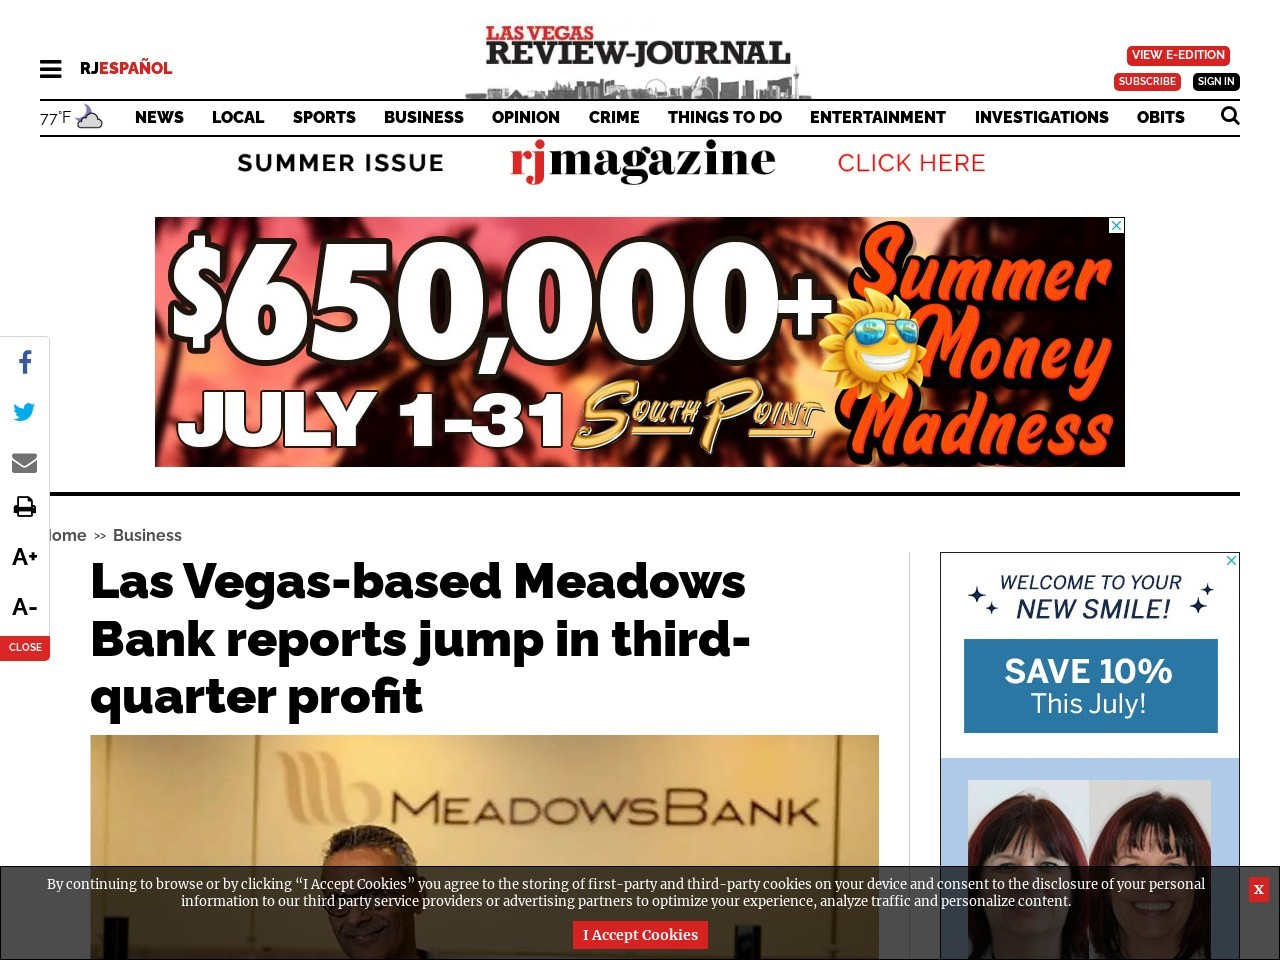 Las Vegas-based Meadows Bank reports jump in third-quarter profit